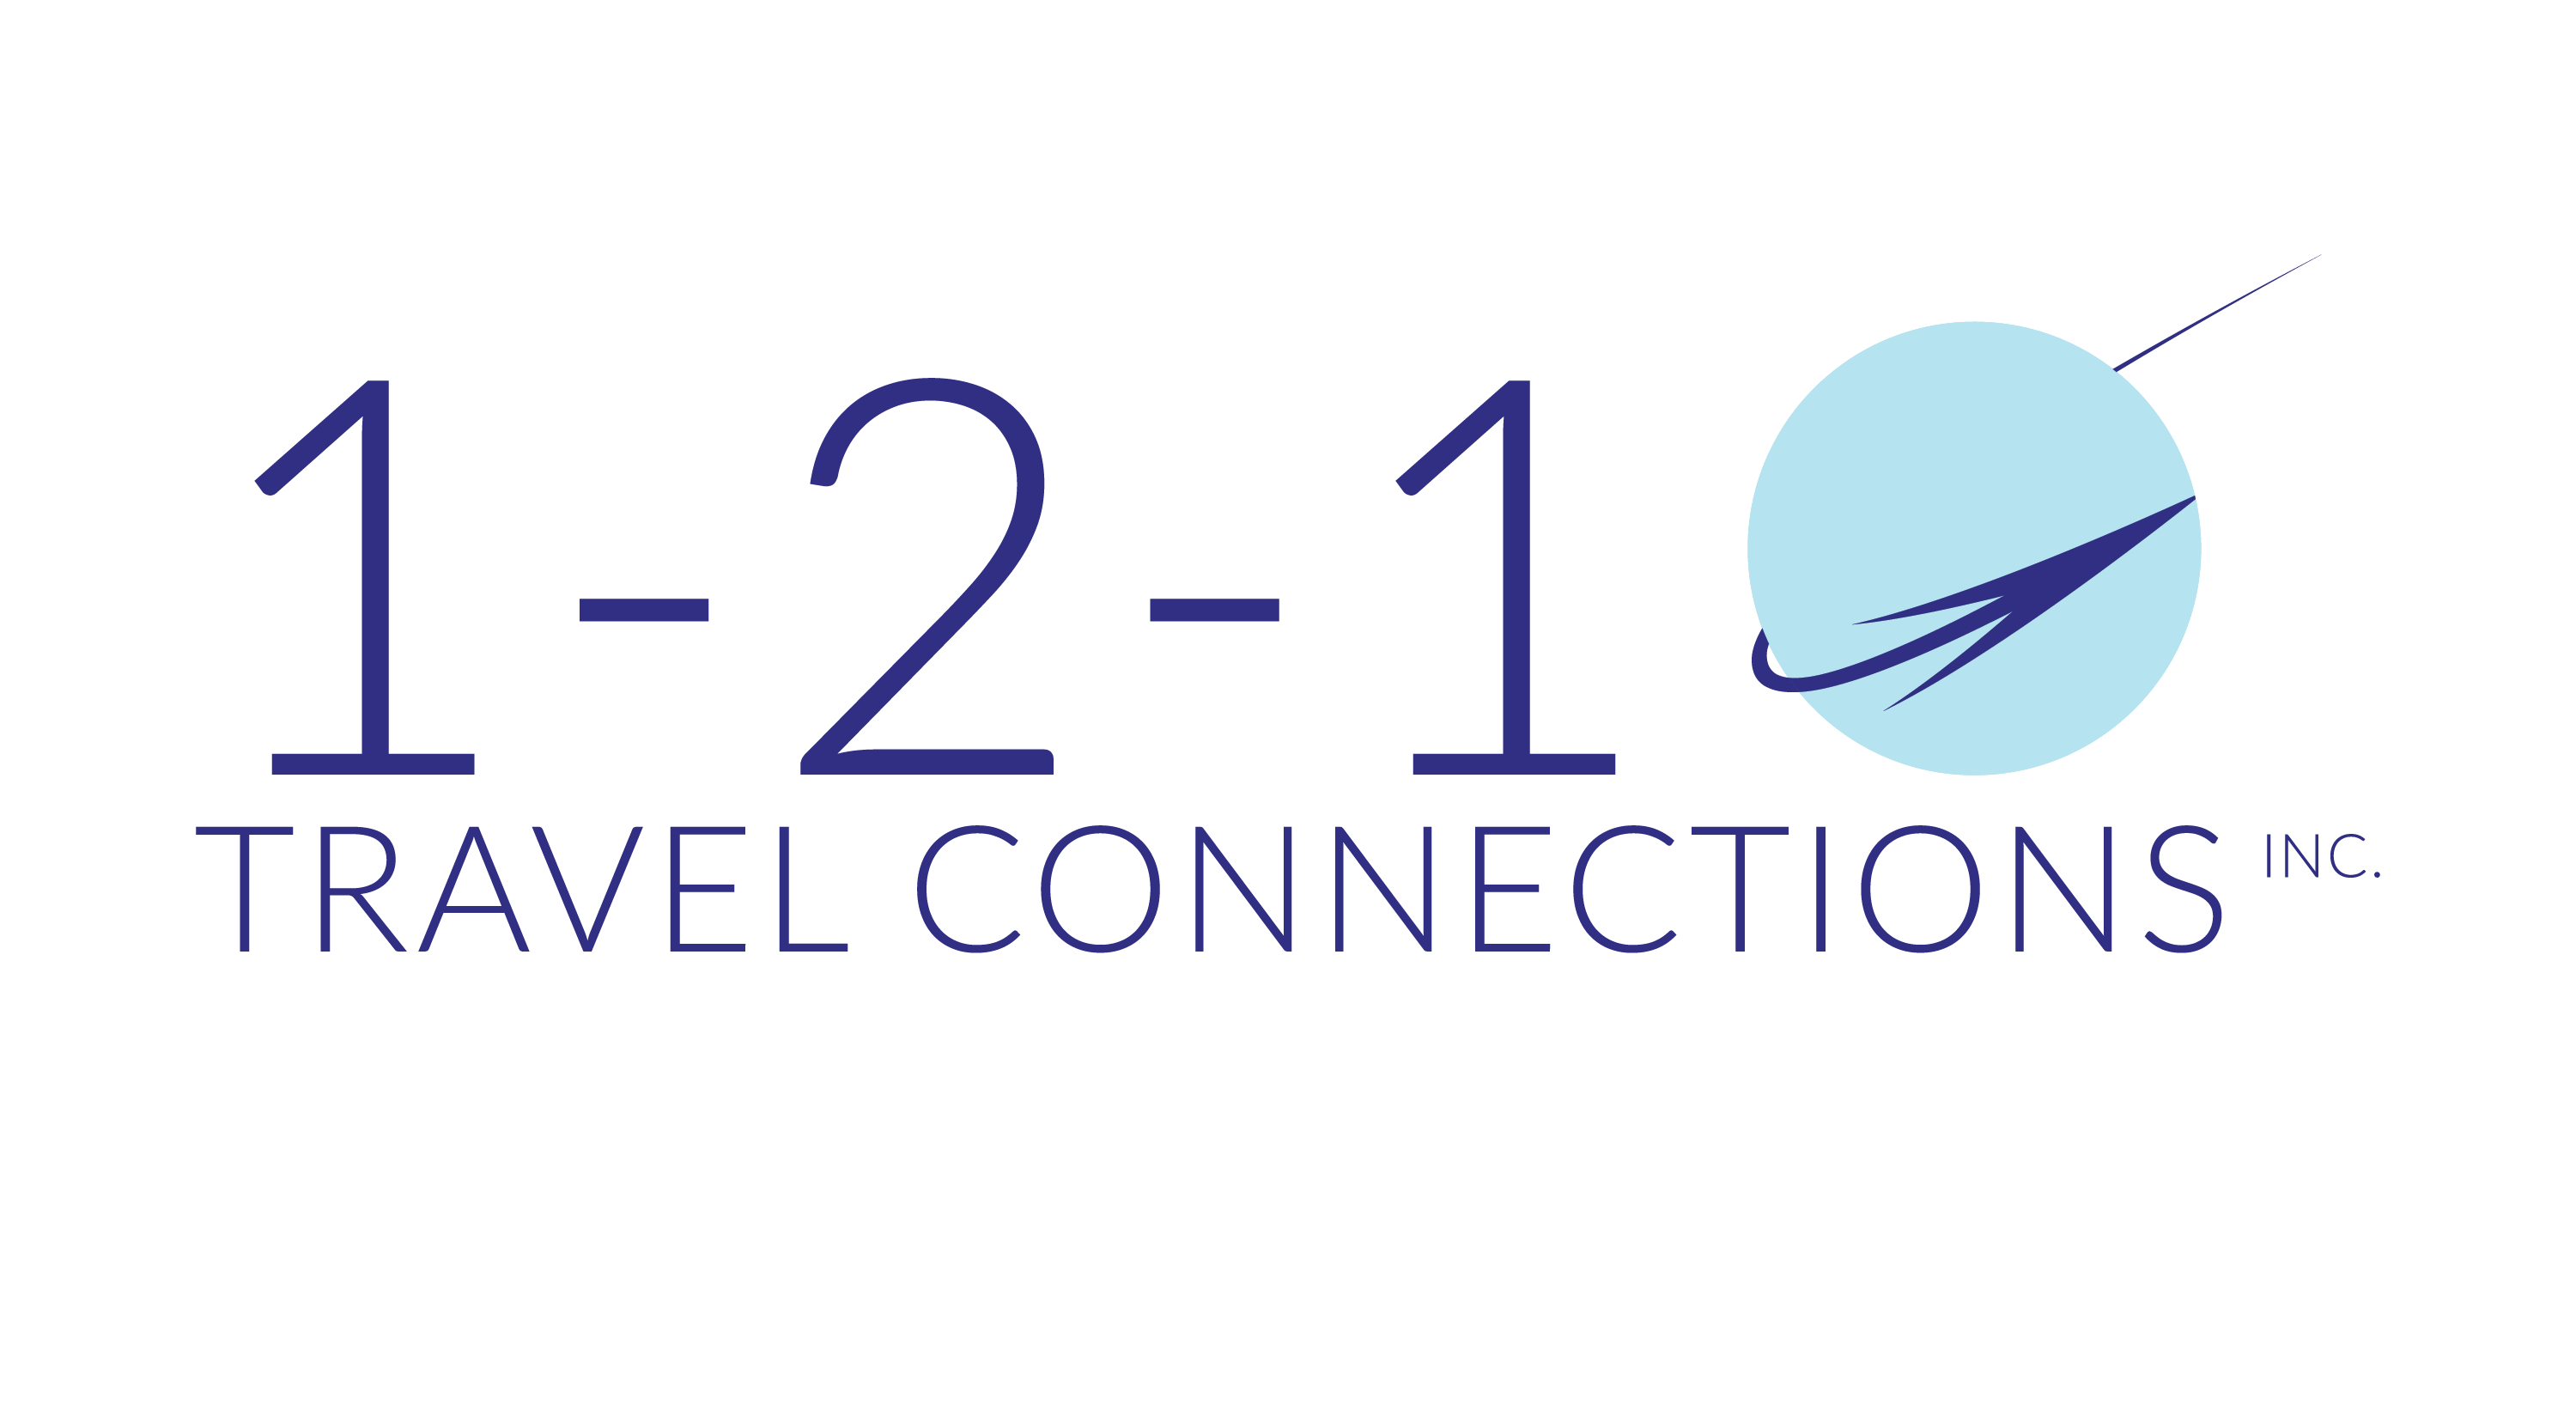 1-2-1 Travel Connections Inc.